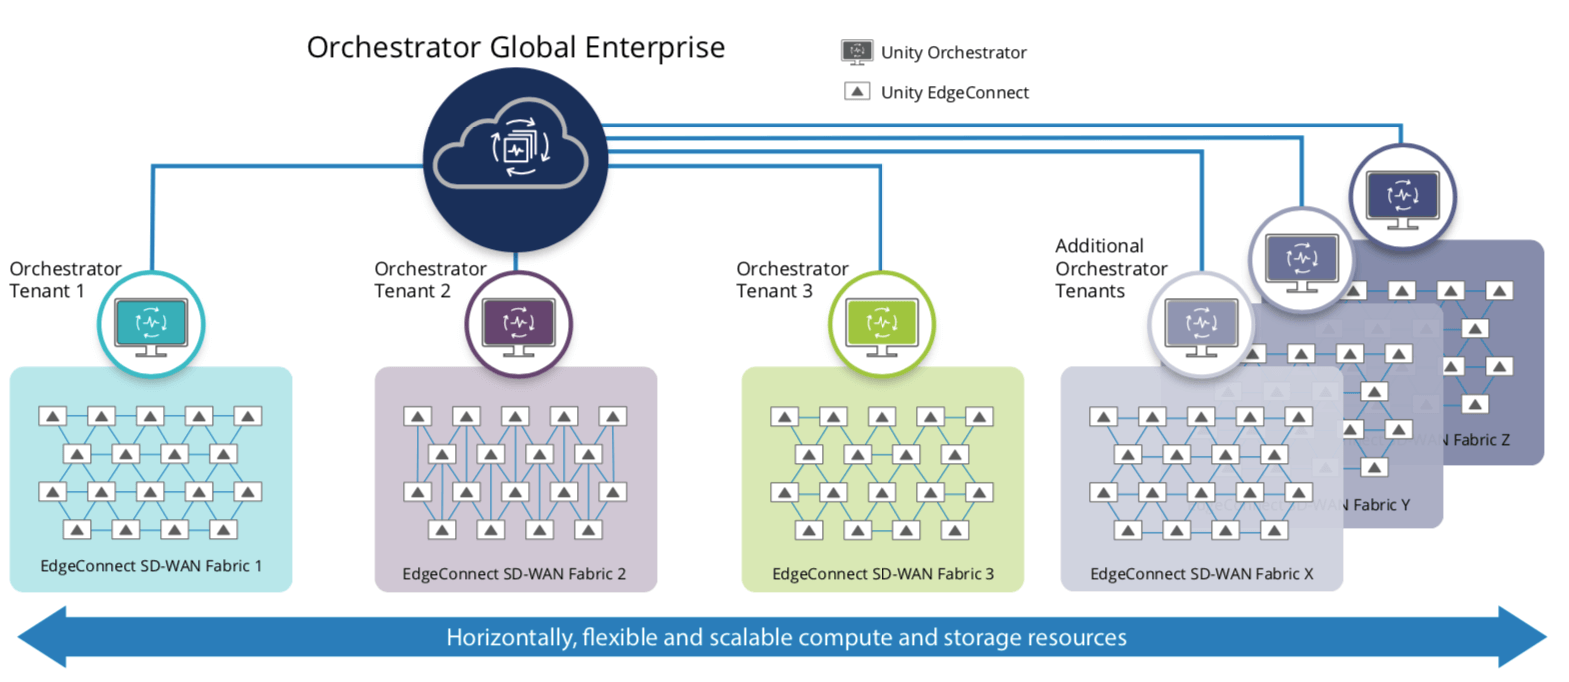 Figure 2: Orchestrator Global Enterprise enables large enterprises to globally manage and monitor multiple SD-WAN fabrics supported by independent tenant Orchestrator instances to support the requirements of different business units or subsidiary companies